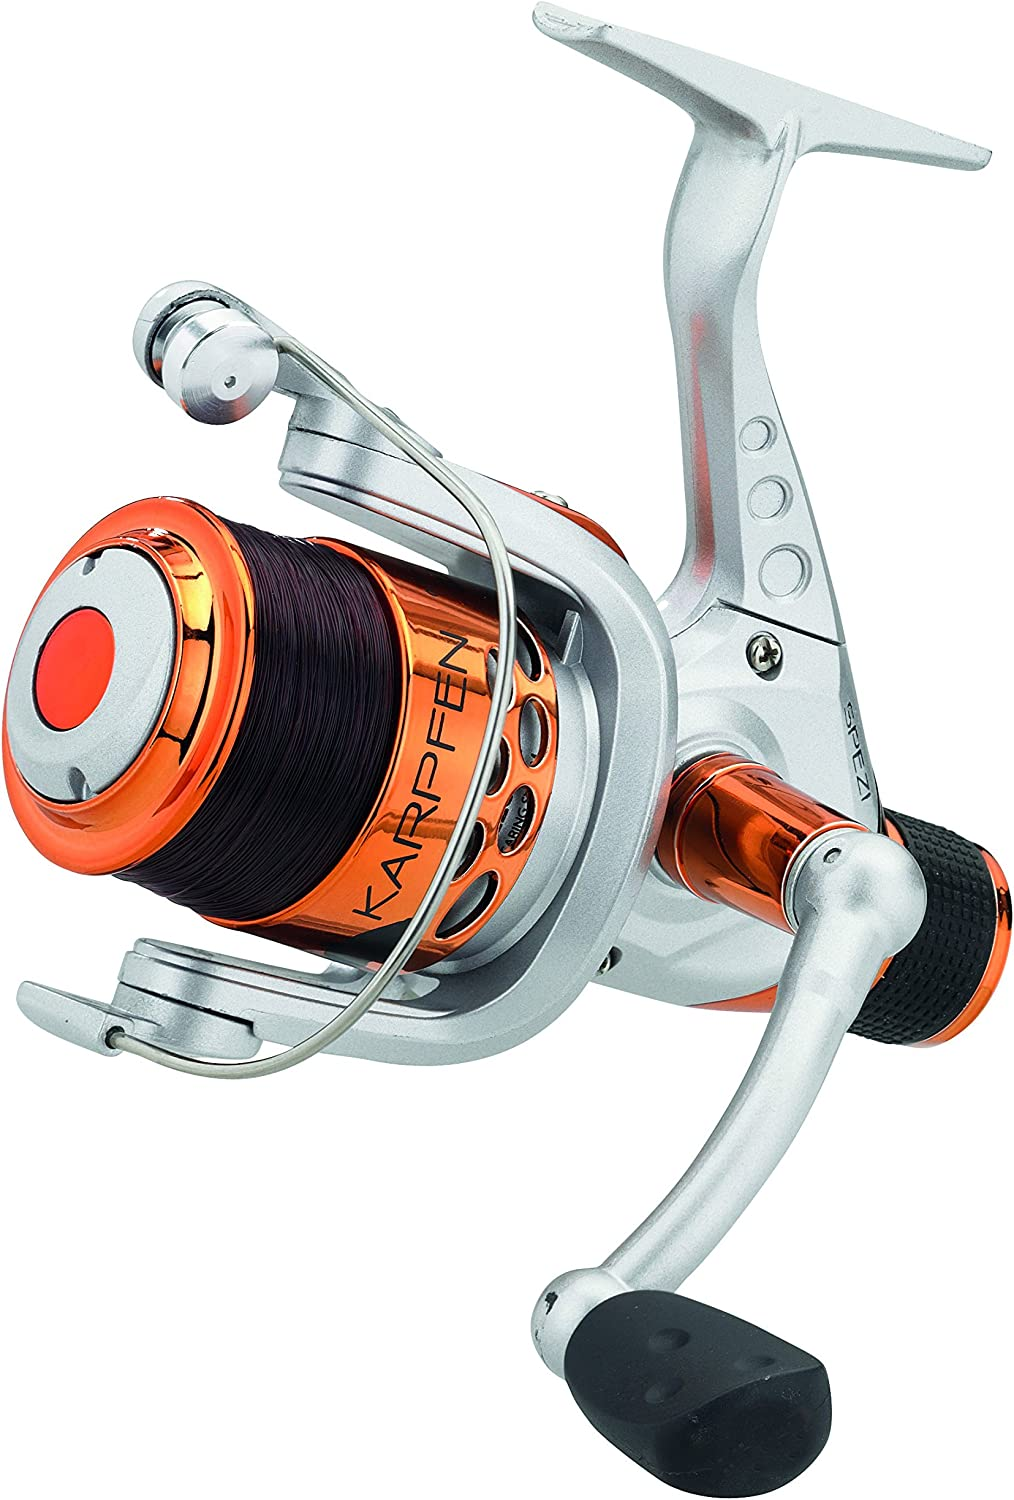 Spoon Trout 4PiF 1500 Cormoran Angelrolle Forellenrolle